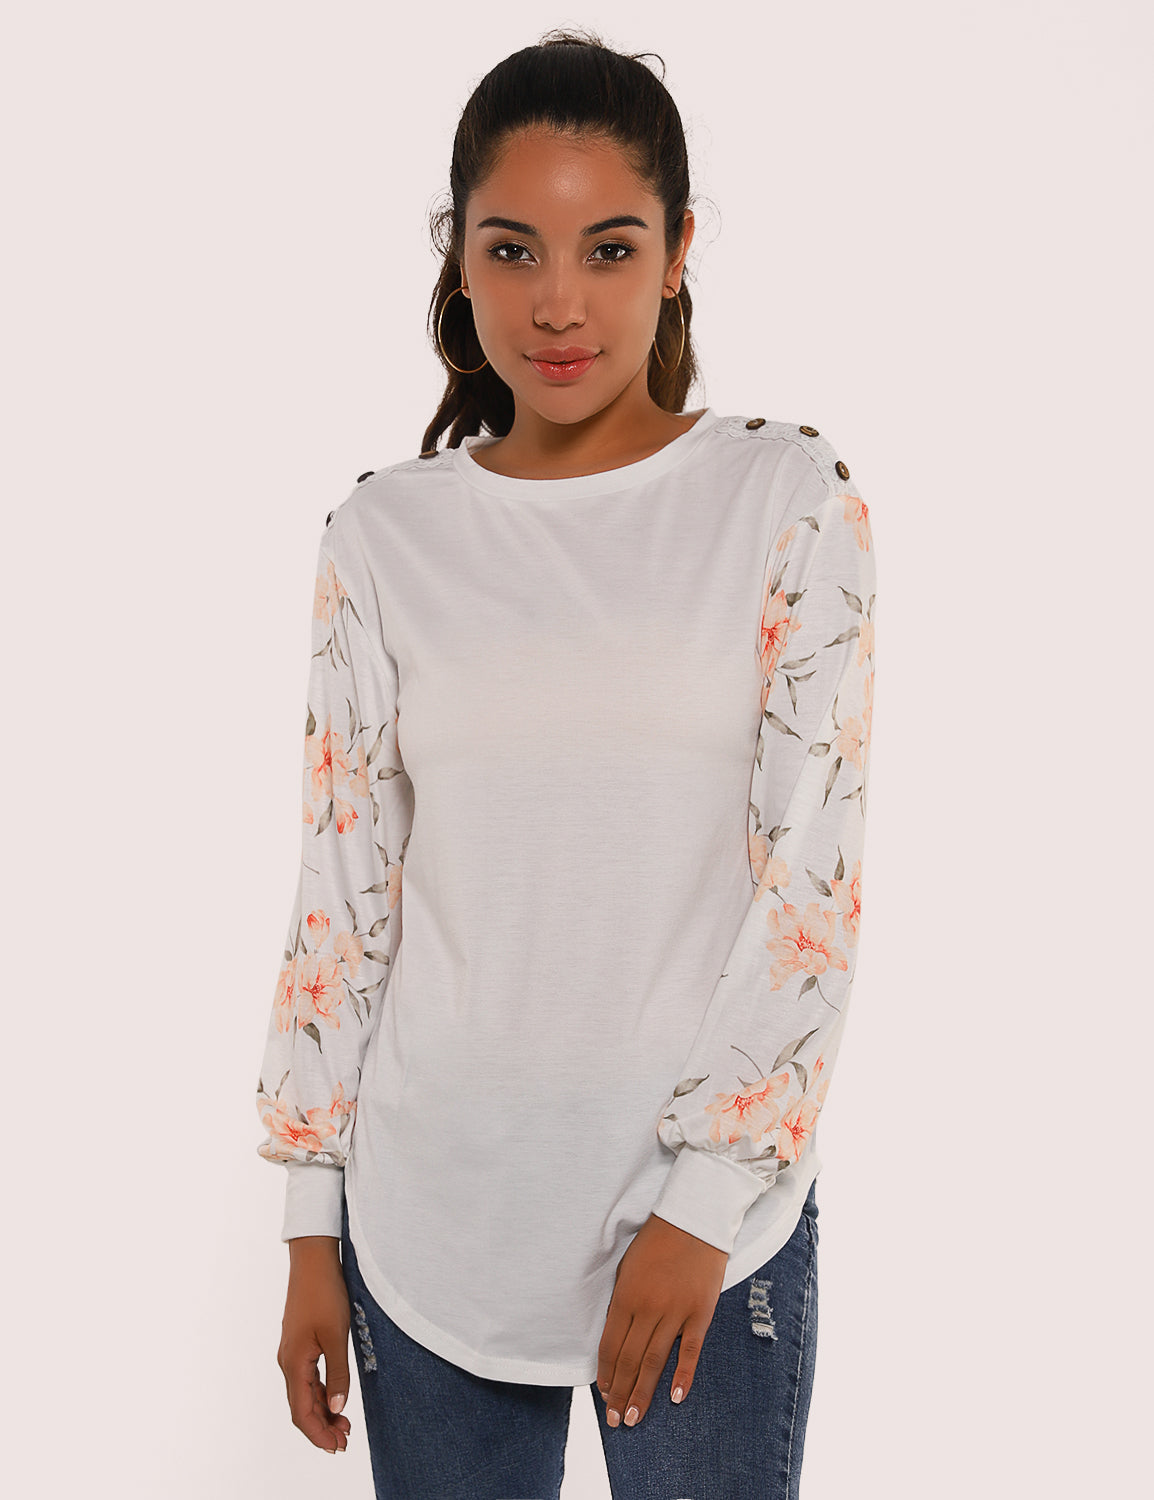 Blooming Jelly_Graceful Floral Sleeves Drop Shoulder Sweatshirt_Floral Print_156255_19_ELegant Women Daily Wear_Tops_Sweatshirt